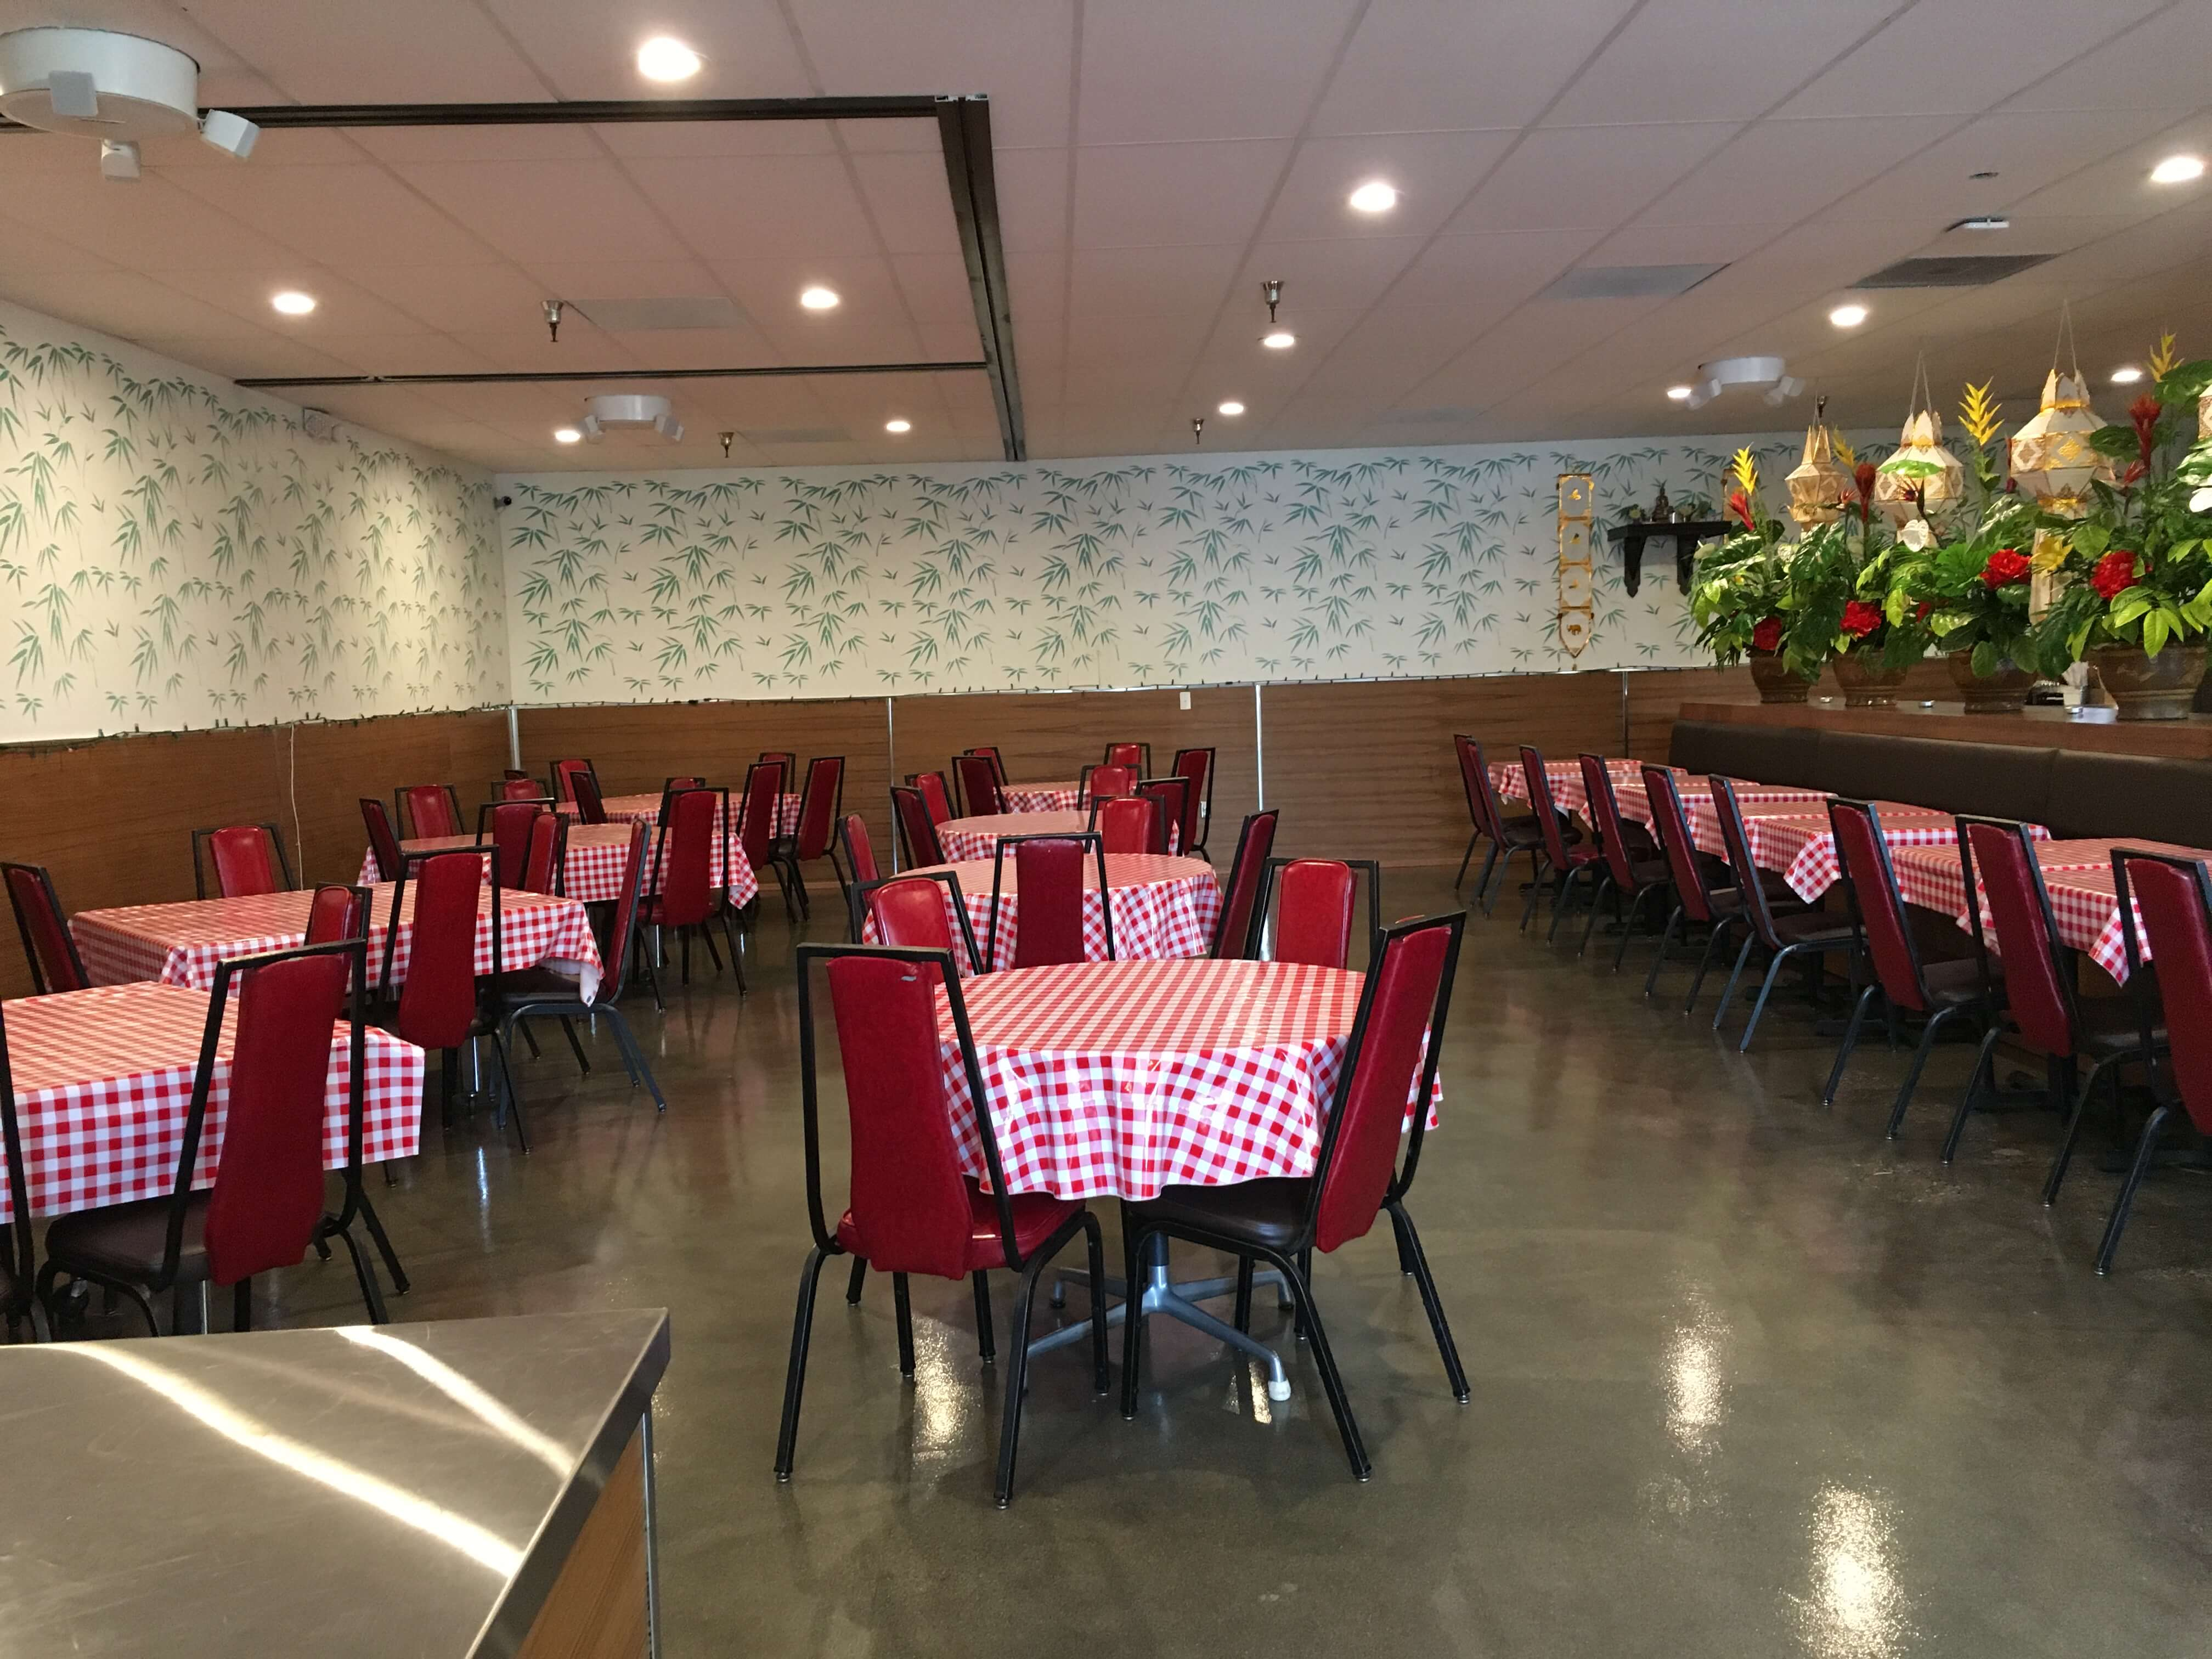 Upstairs dining area with plenty of room for groups of varying sizes.